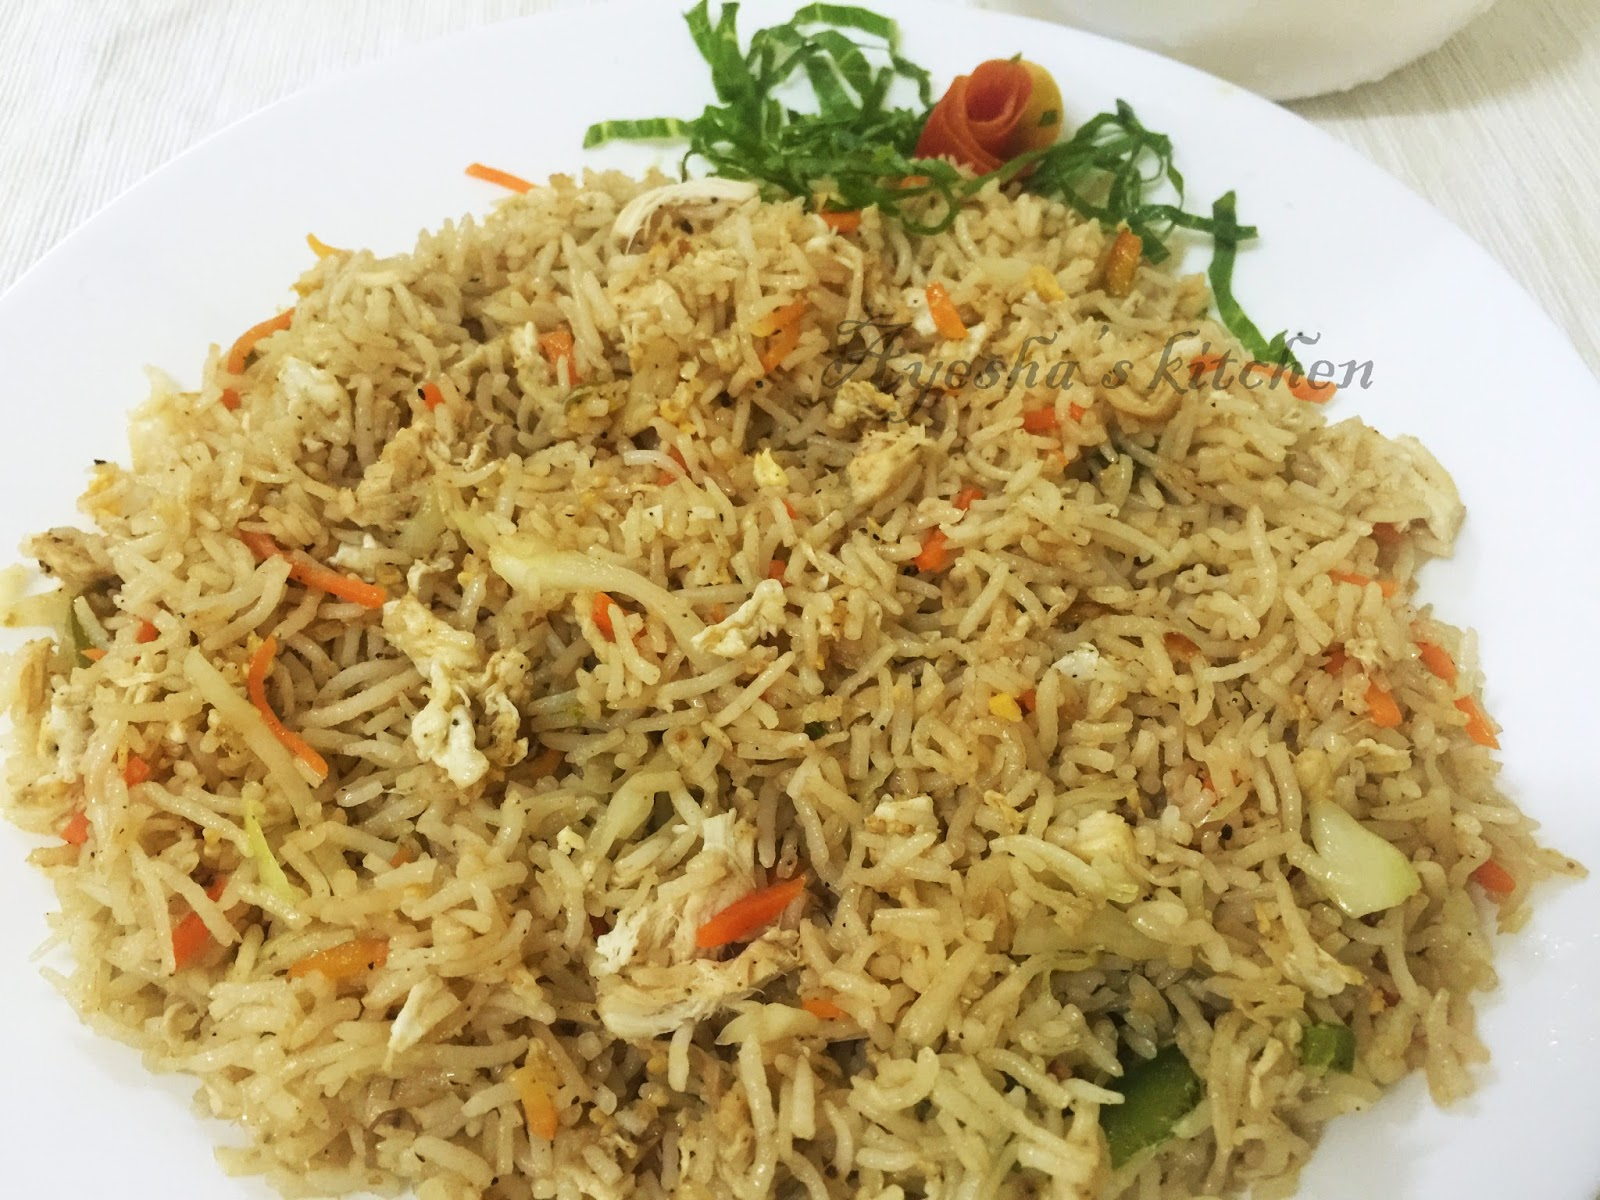 Thai fried rice chicken fried rice recipe thai cuisine you might also like vegetable fried rice ccuart Images